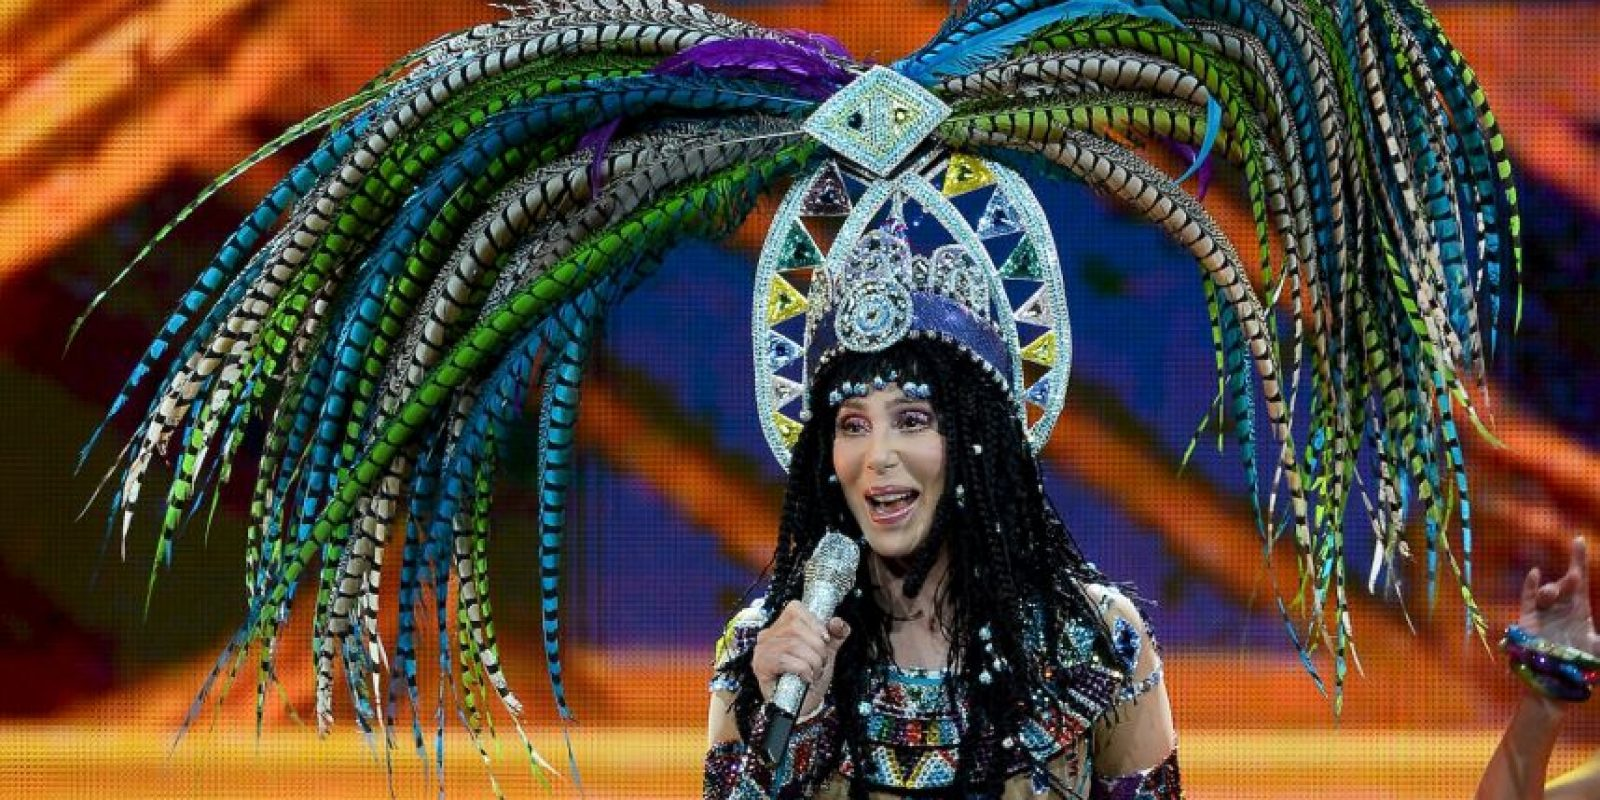 Cher tampoco se salvó de sus ofensas Foto: Getty Images